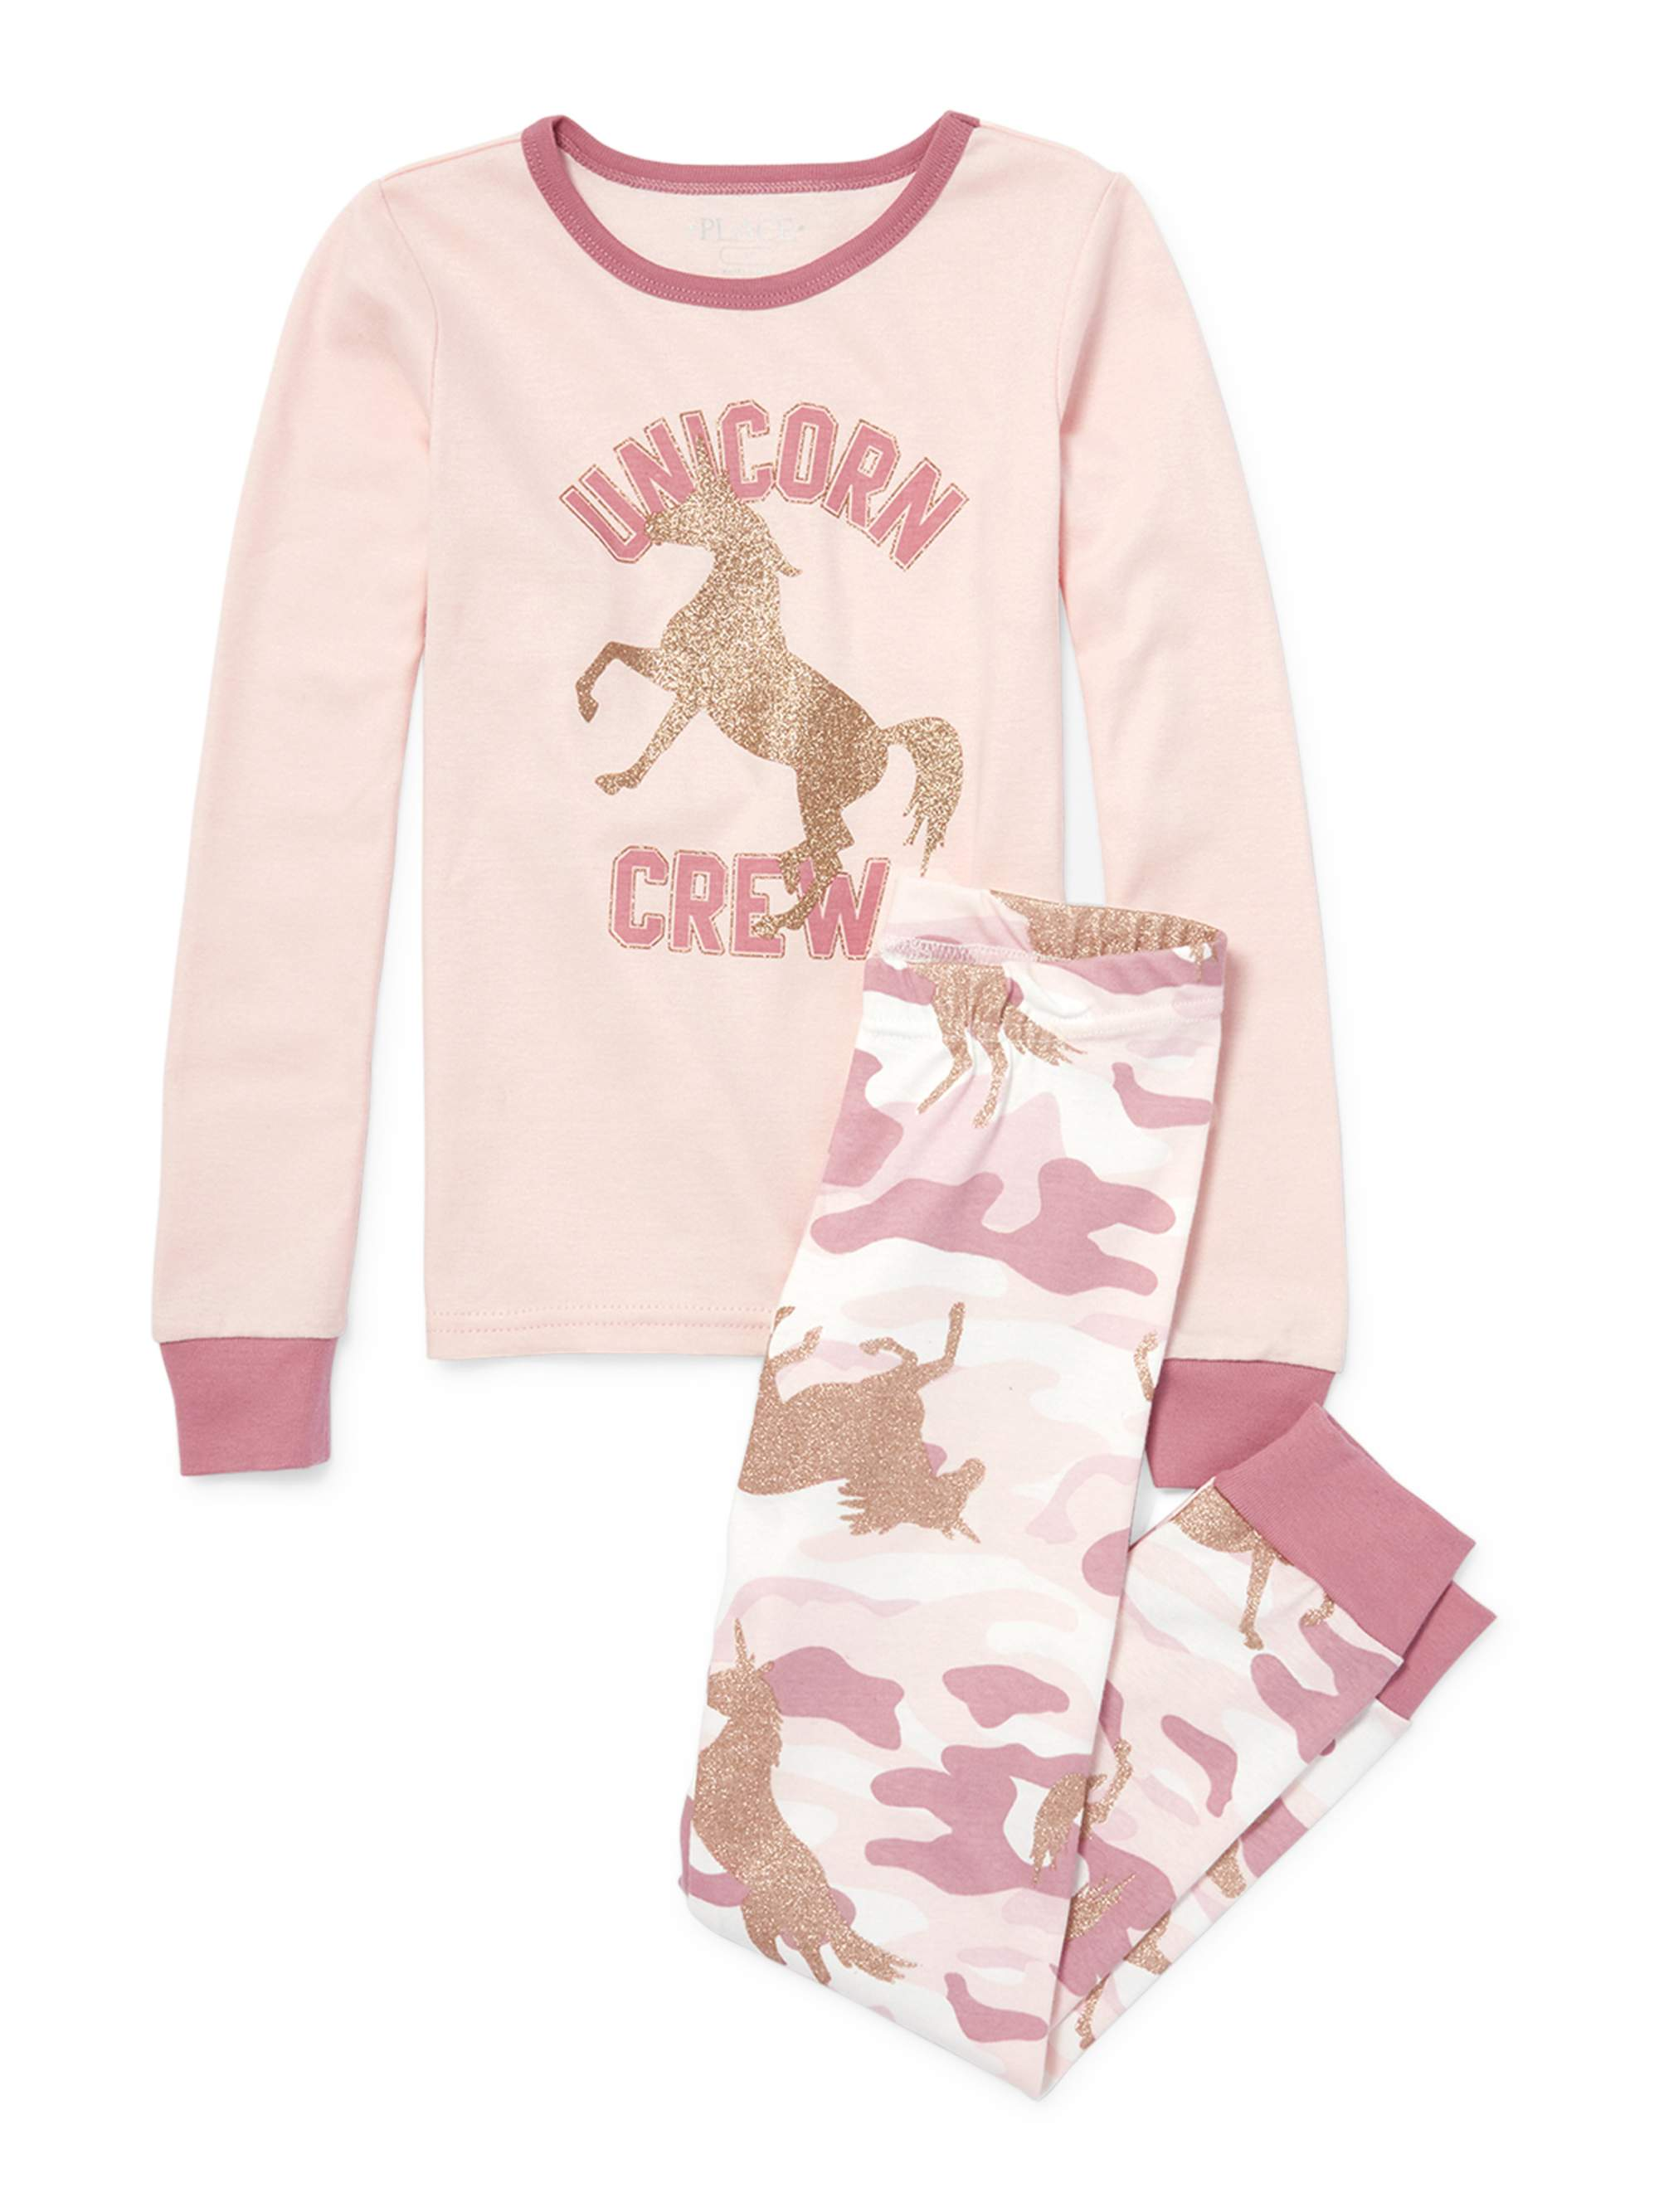 Girl's Unicorn Crew Long Sleeve Pajamas (Big Girl & Little Girl)